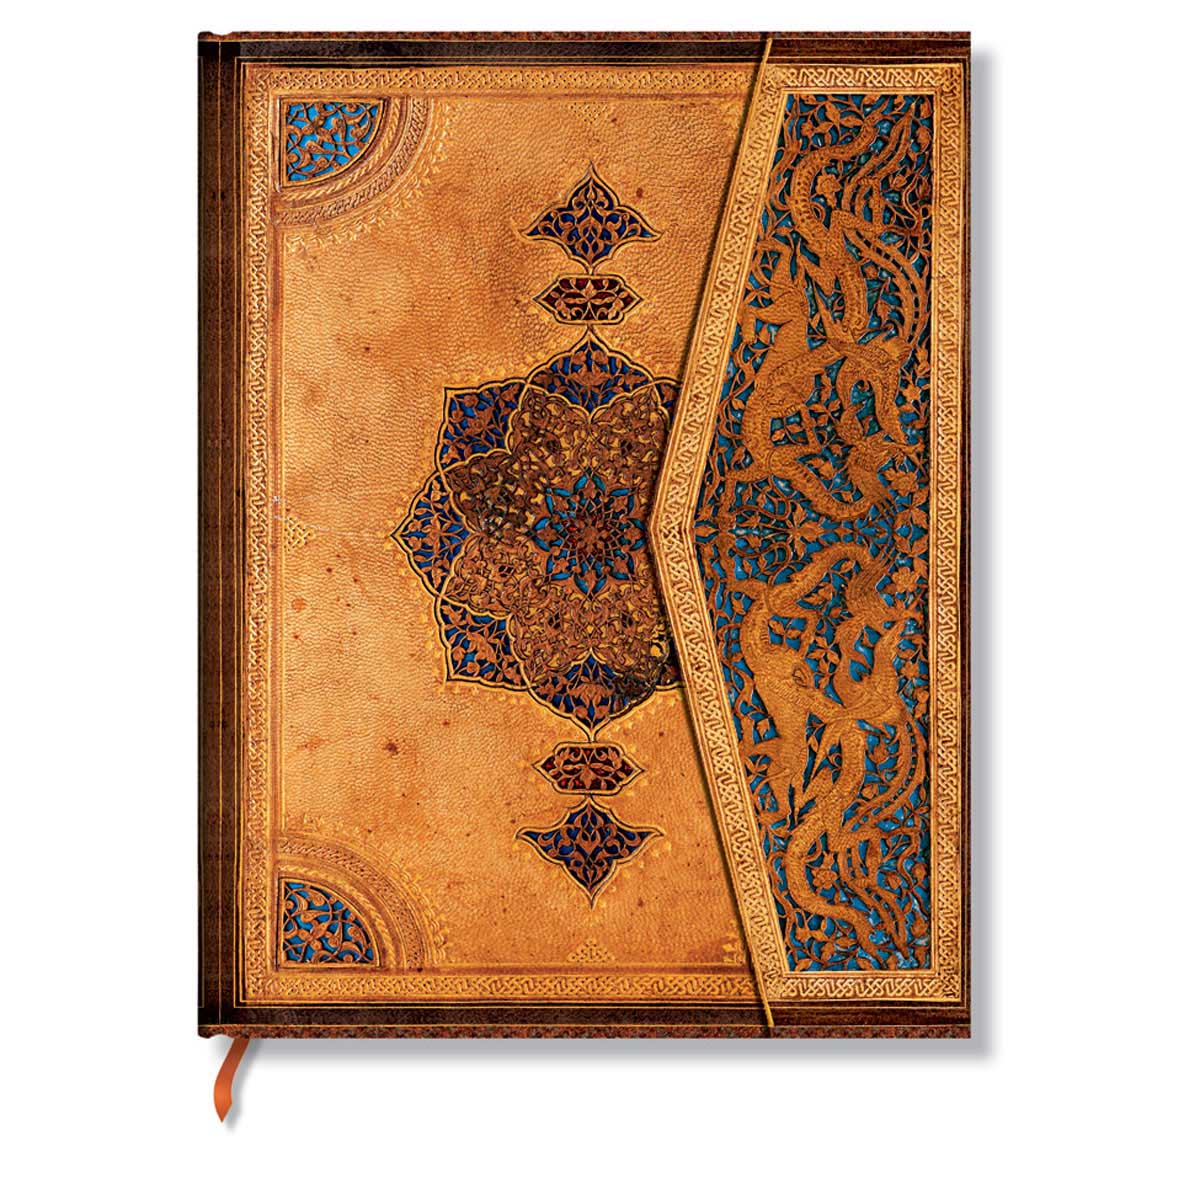 "Paperblanks Safavid 7"" x 9"" Ultra Journal"